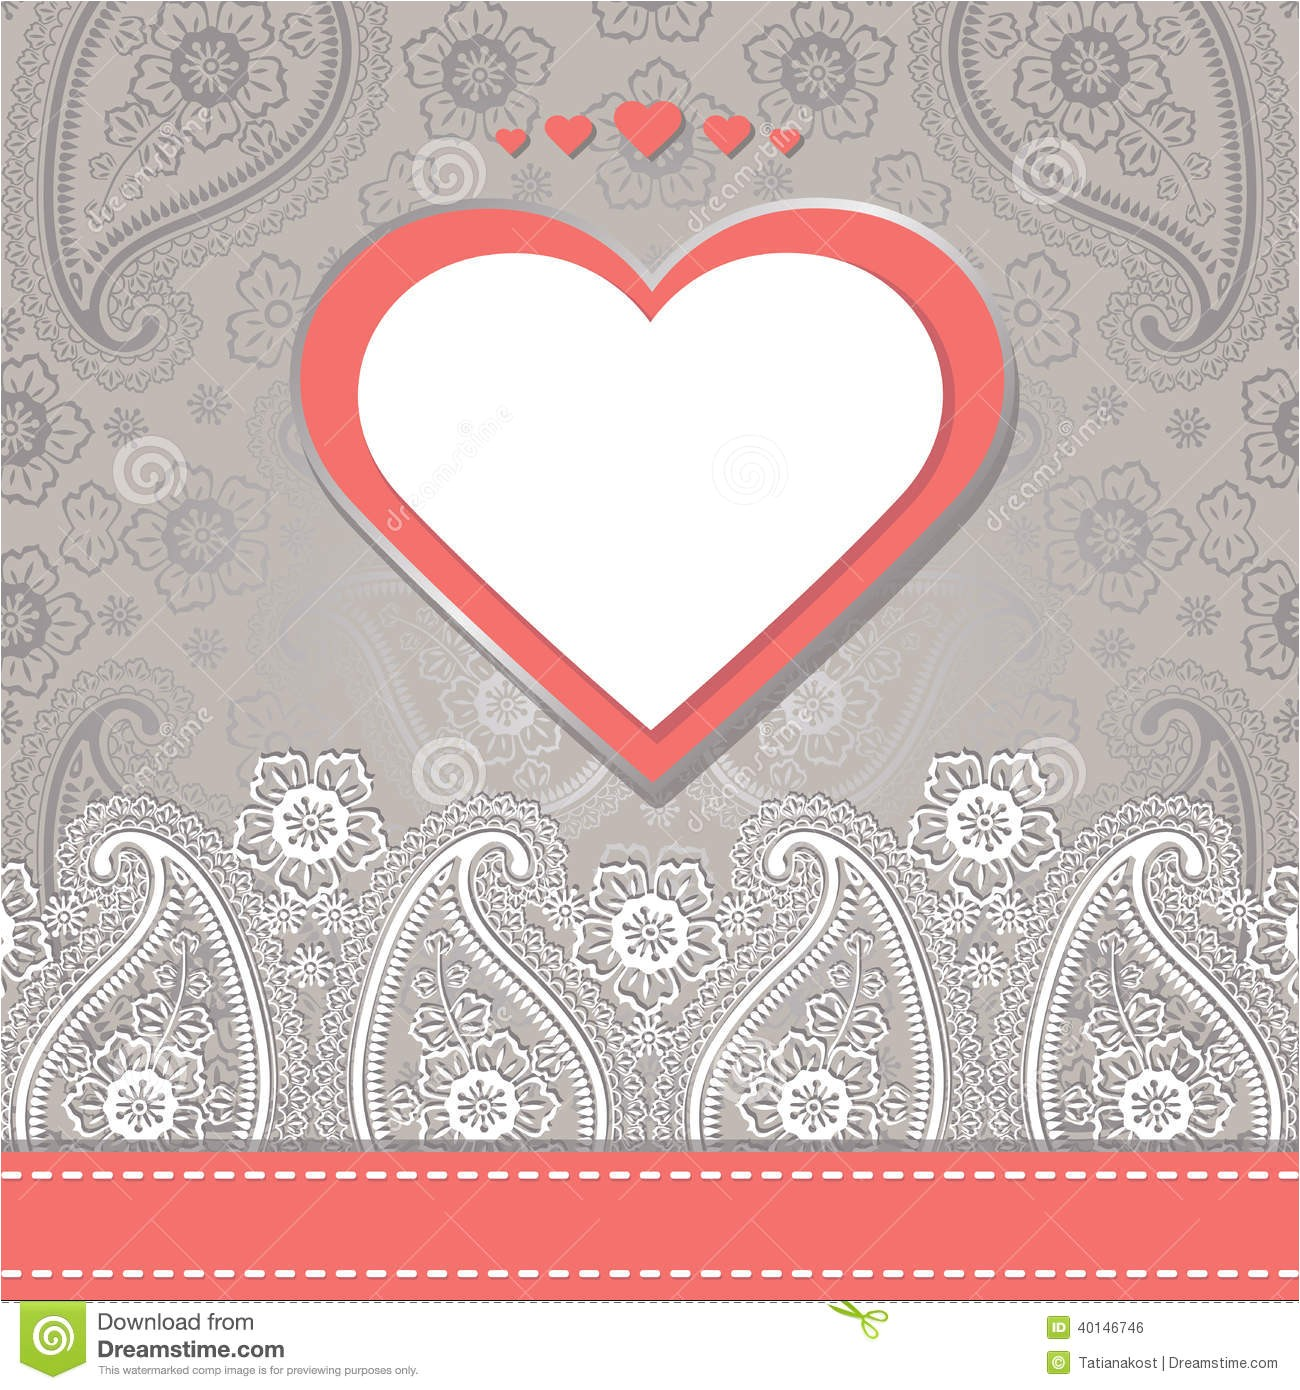 royalty free stock image cute design template paisley border lace hearts wedding invitation imitation motive label ribbon turkish cucumbers image40146746